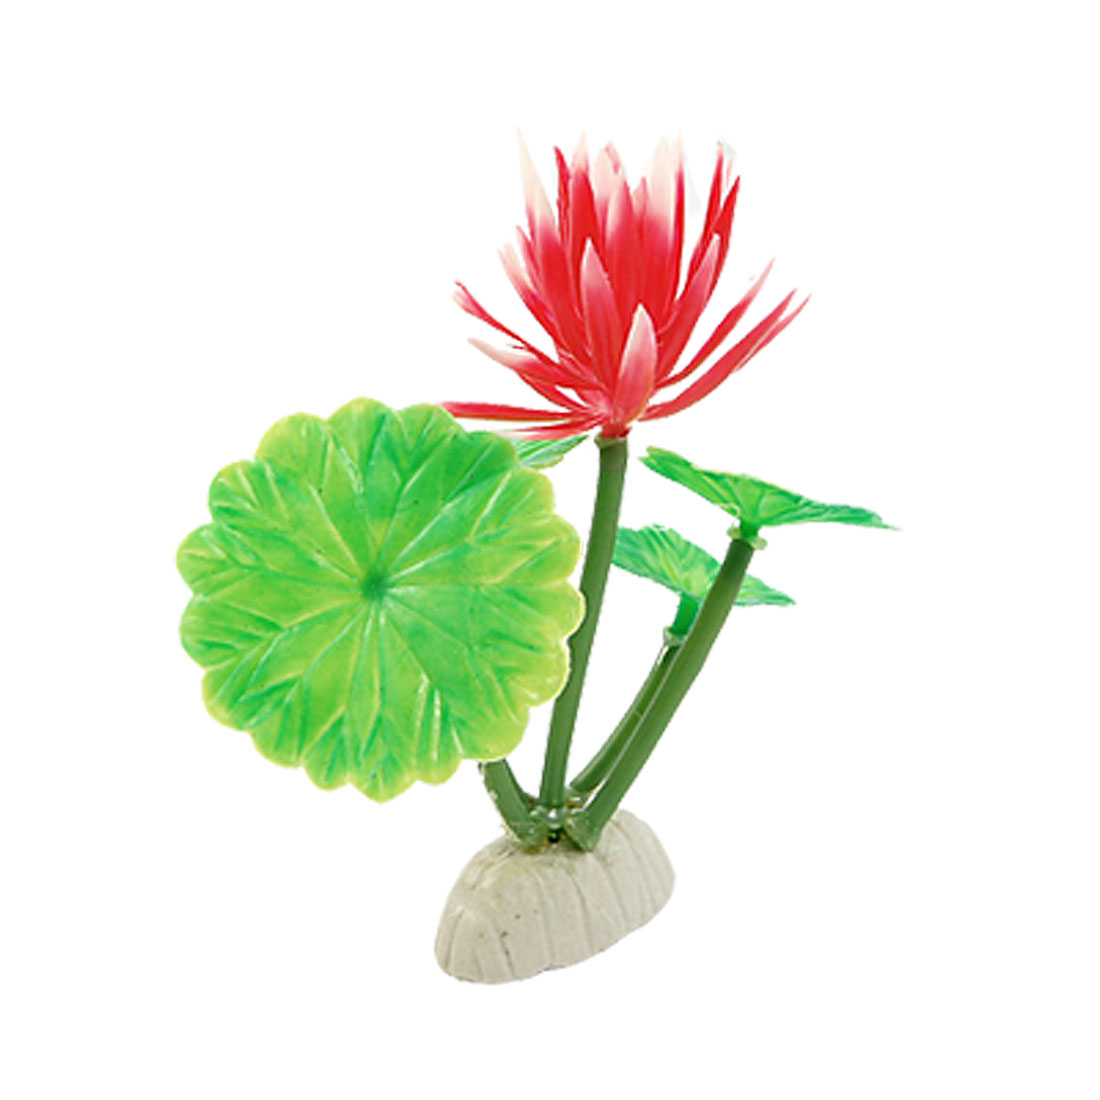 Red Floral Green Leaves Underwater Plants Ornament for Aquarium